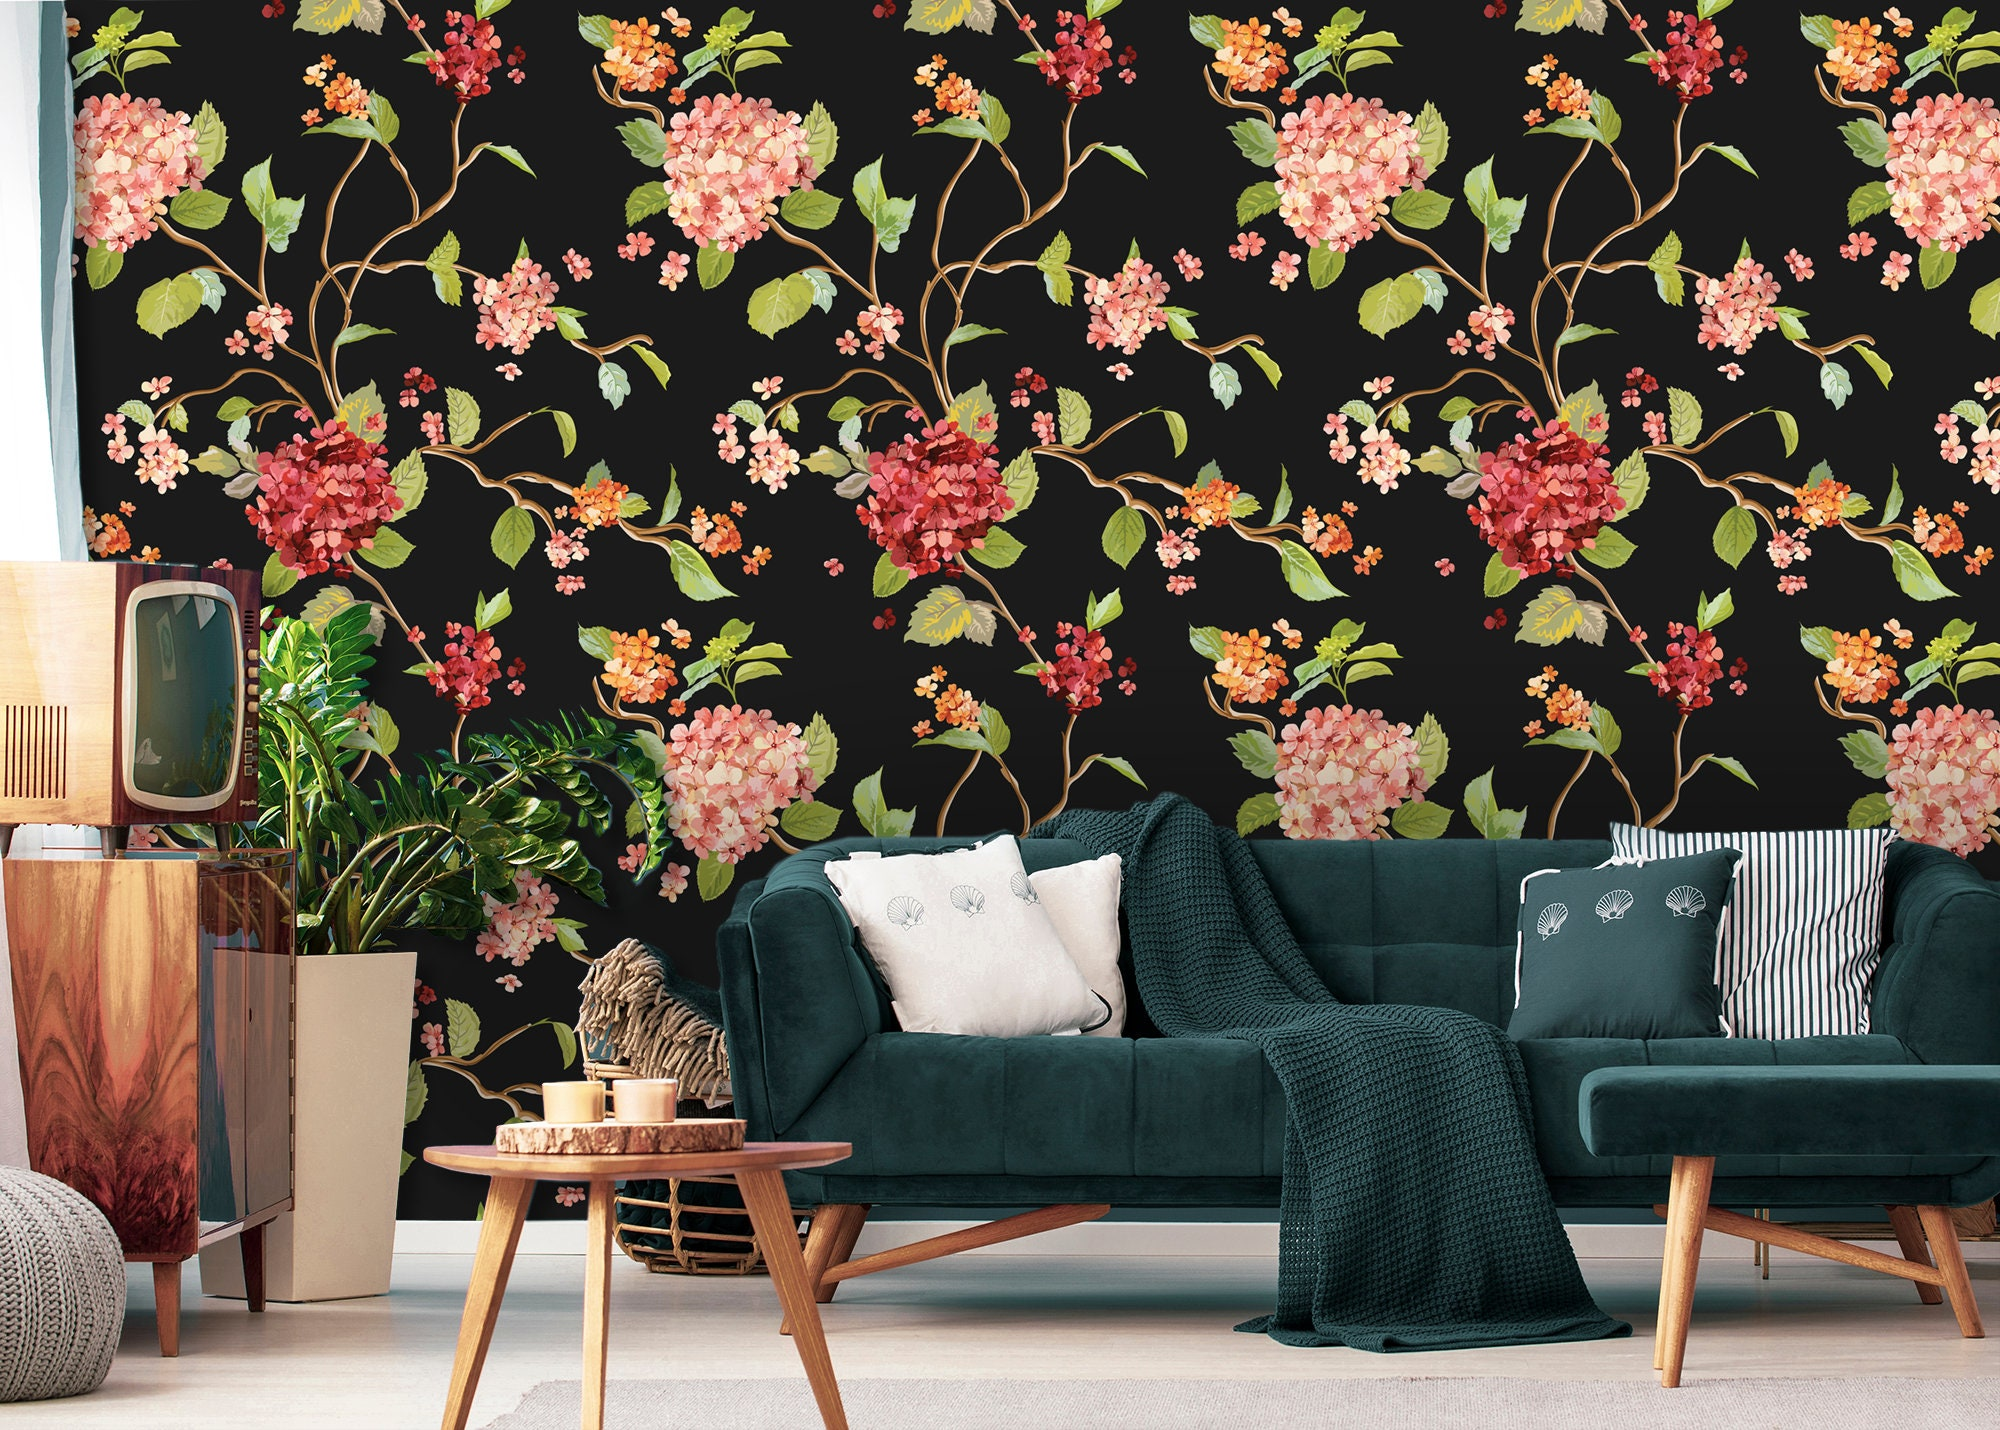 Blooming Hortensia Removable Wallpaper Vintage Floral Etsy